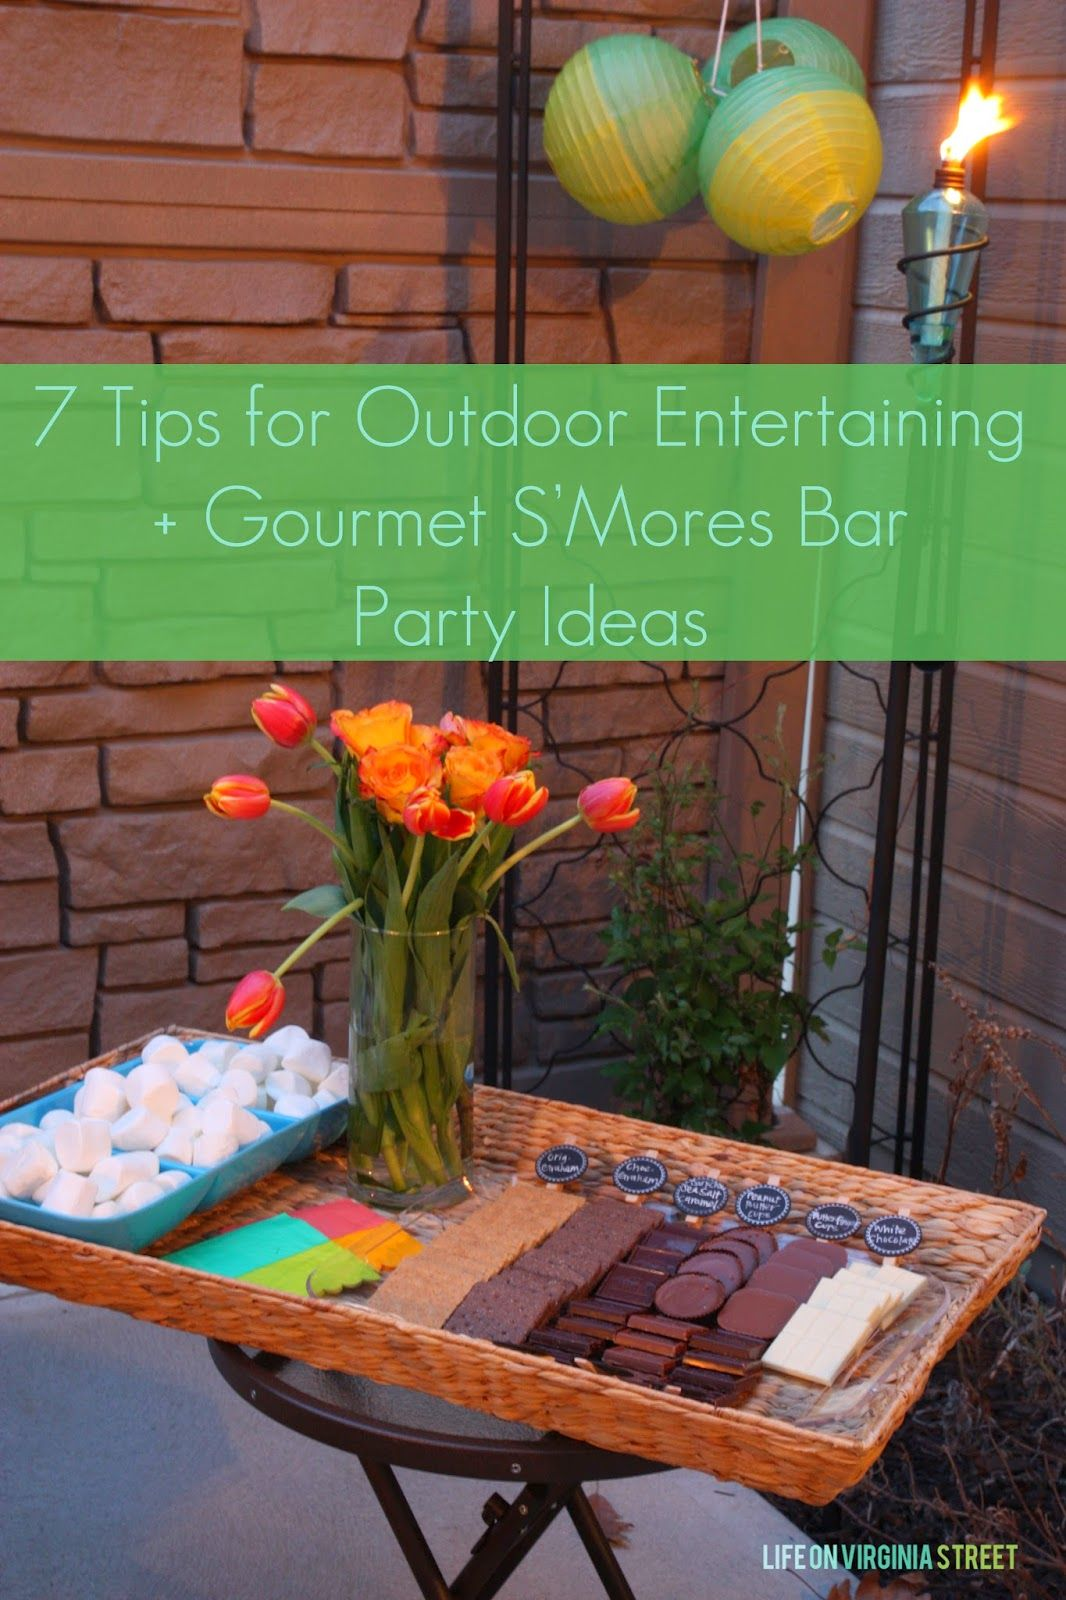 gourmet s u0027mores bar ideas u0026 7 tips for outdoor entertaining